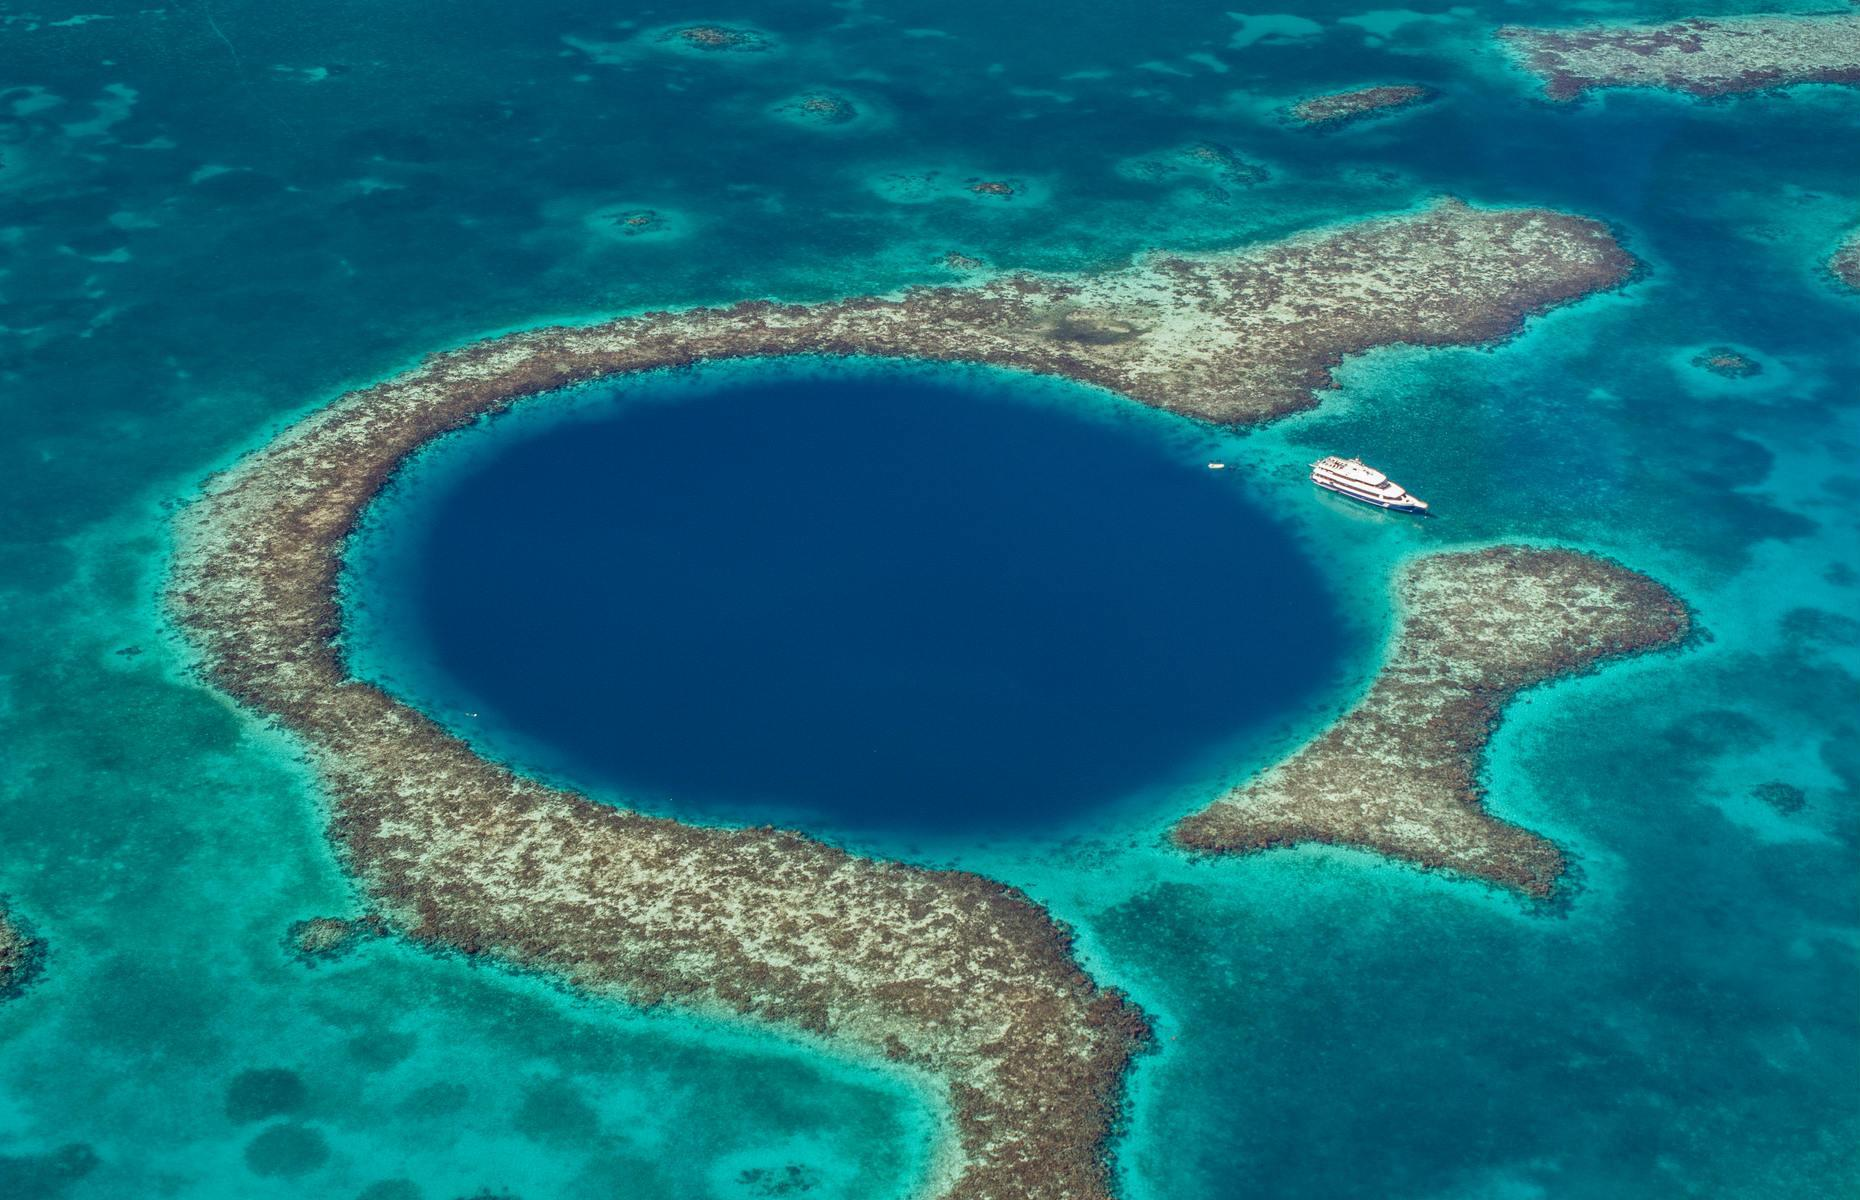 Slide 5 of 31: Set 60 miles from the coast of Belize, surrounded by shallow turquoise waters and encircled by an atoll, this perfectly cylindrical sinkhole blinks from the depths like a vast, inky eye. A dazzling sight from above at 1,000 feet wide (304m) and more than 400 feet deep (122m), this is one of the world's largest submarine sinkholes. It was made famous when the explorer Jacques Cousteau filmed it in the 1970s and today the Belize Barrier Reef, of which The Great Blue Hole is part, is a UNESCO World Heritage Site.